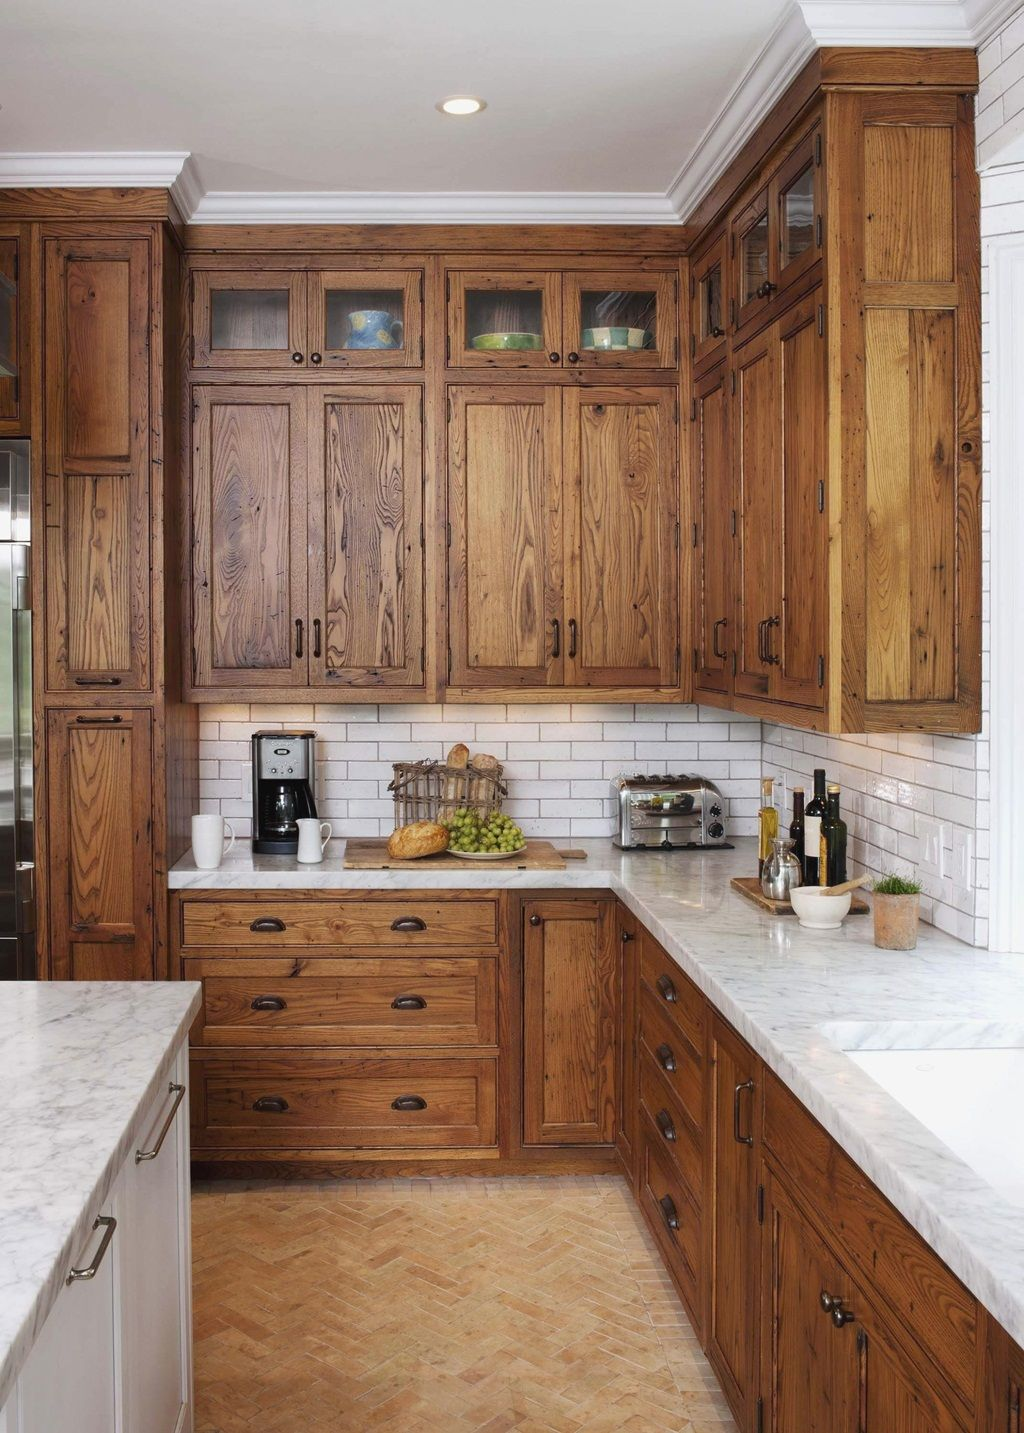 Used Kitchen Cabinet A Quality Luxury Choice To Save Money With